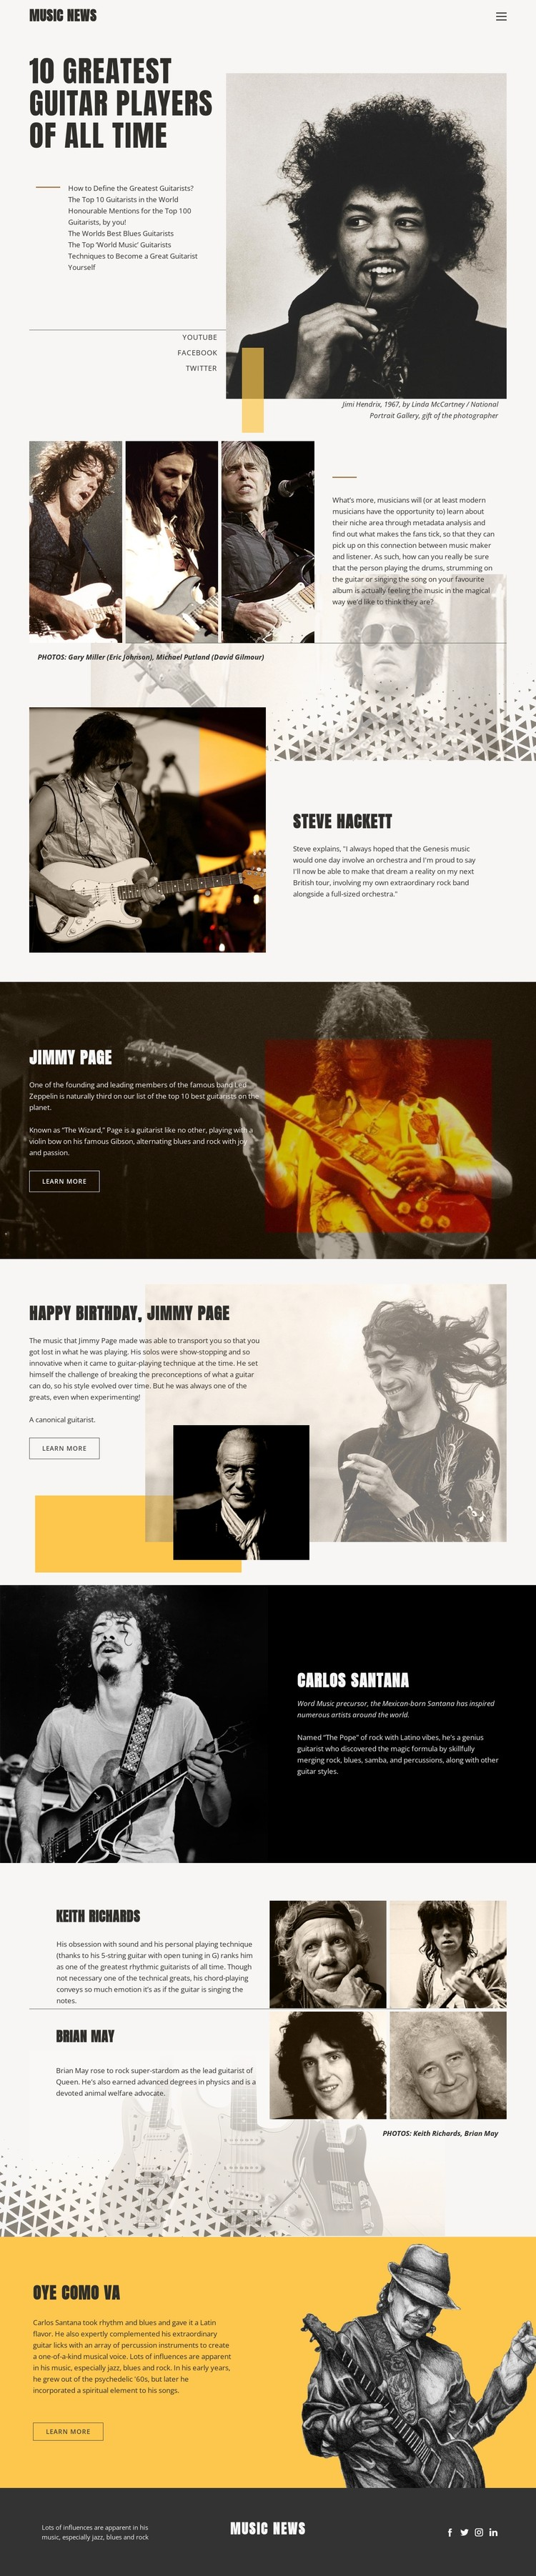 The Top Guitar Players CSS Template